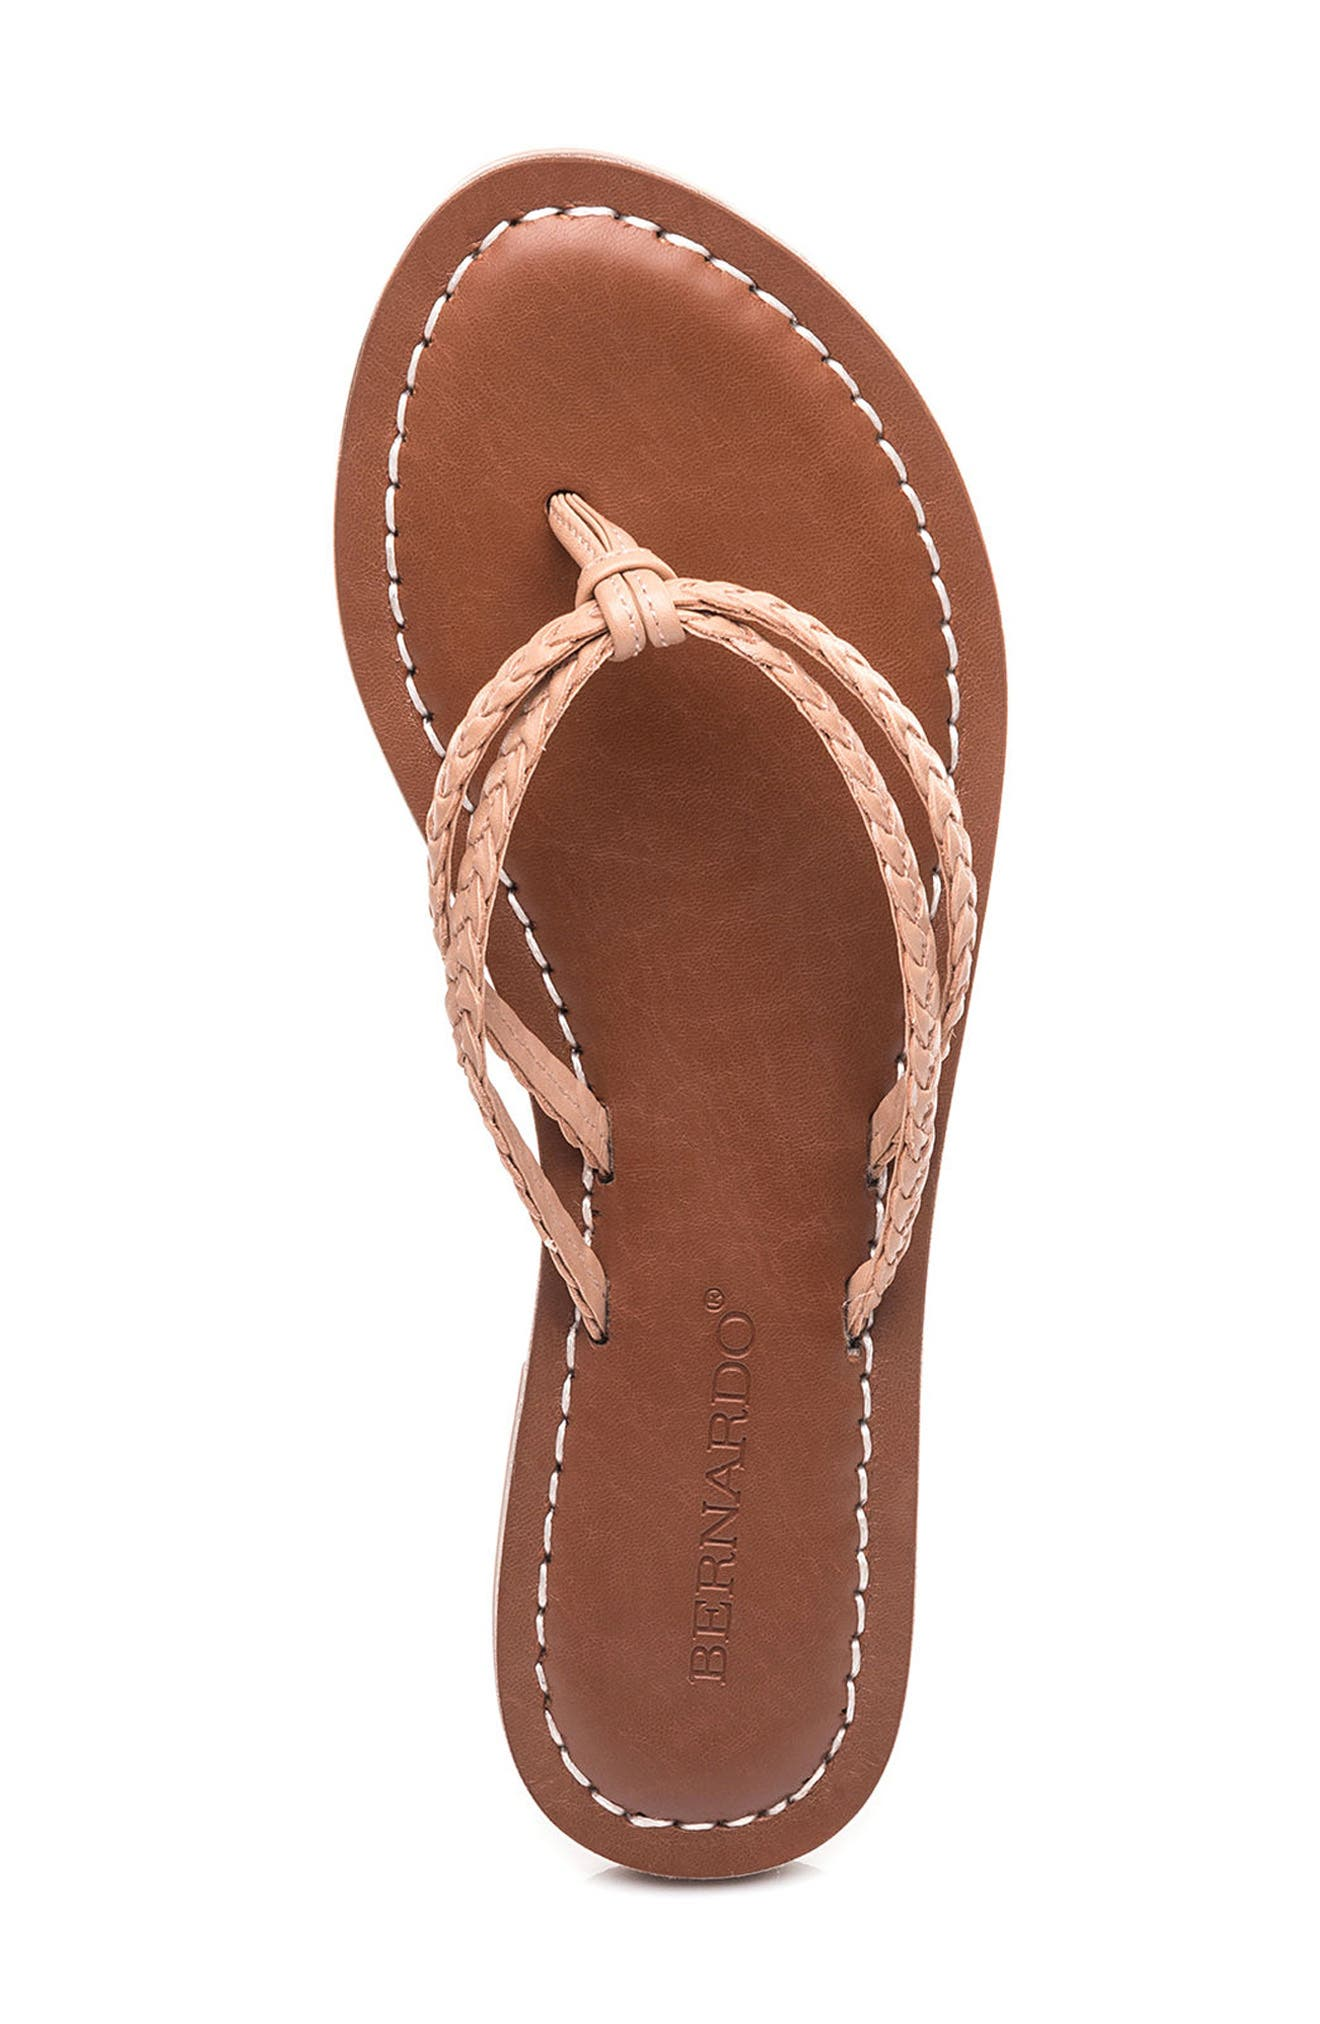 Bernardo Greta Braided Strap Sandal,                             Alternate thumbnail 33, color,